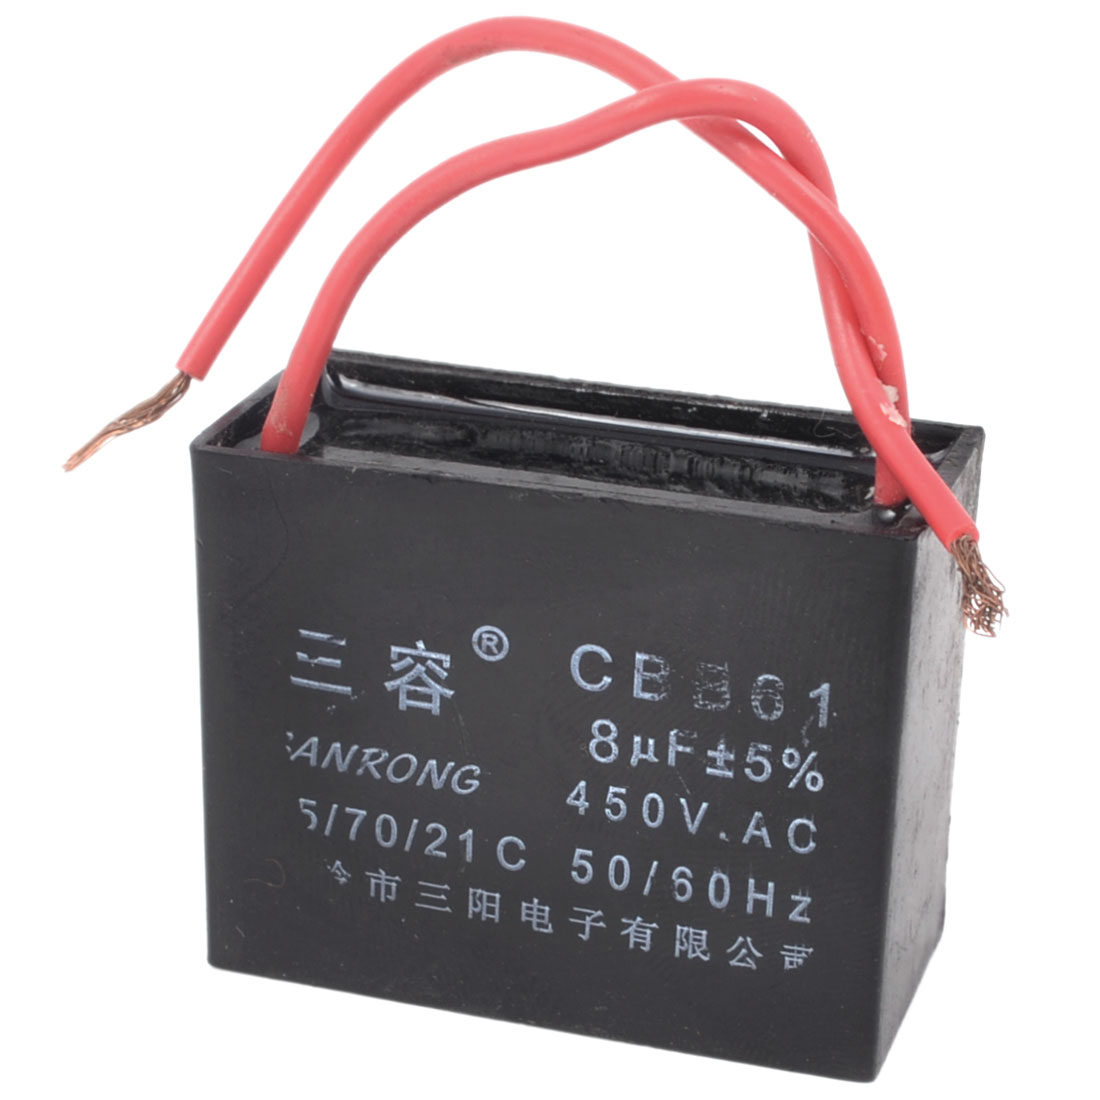 AC 450V 8uF 5% Tolerance 2-Wire Polypropylene Film Motor Run Capacitor